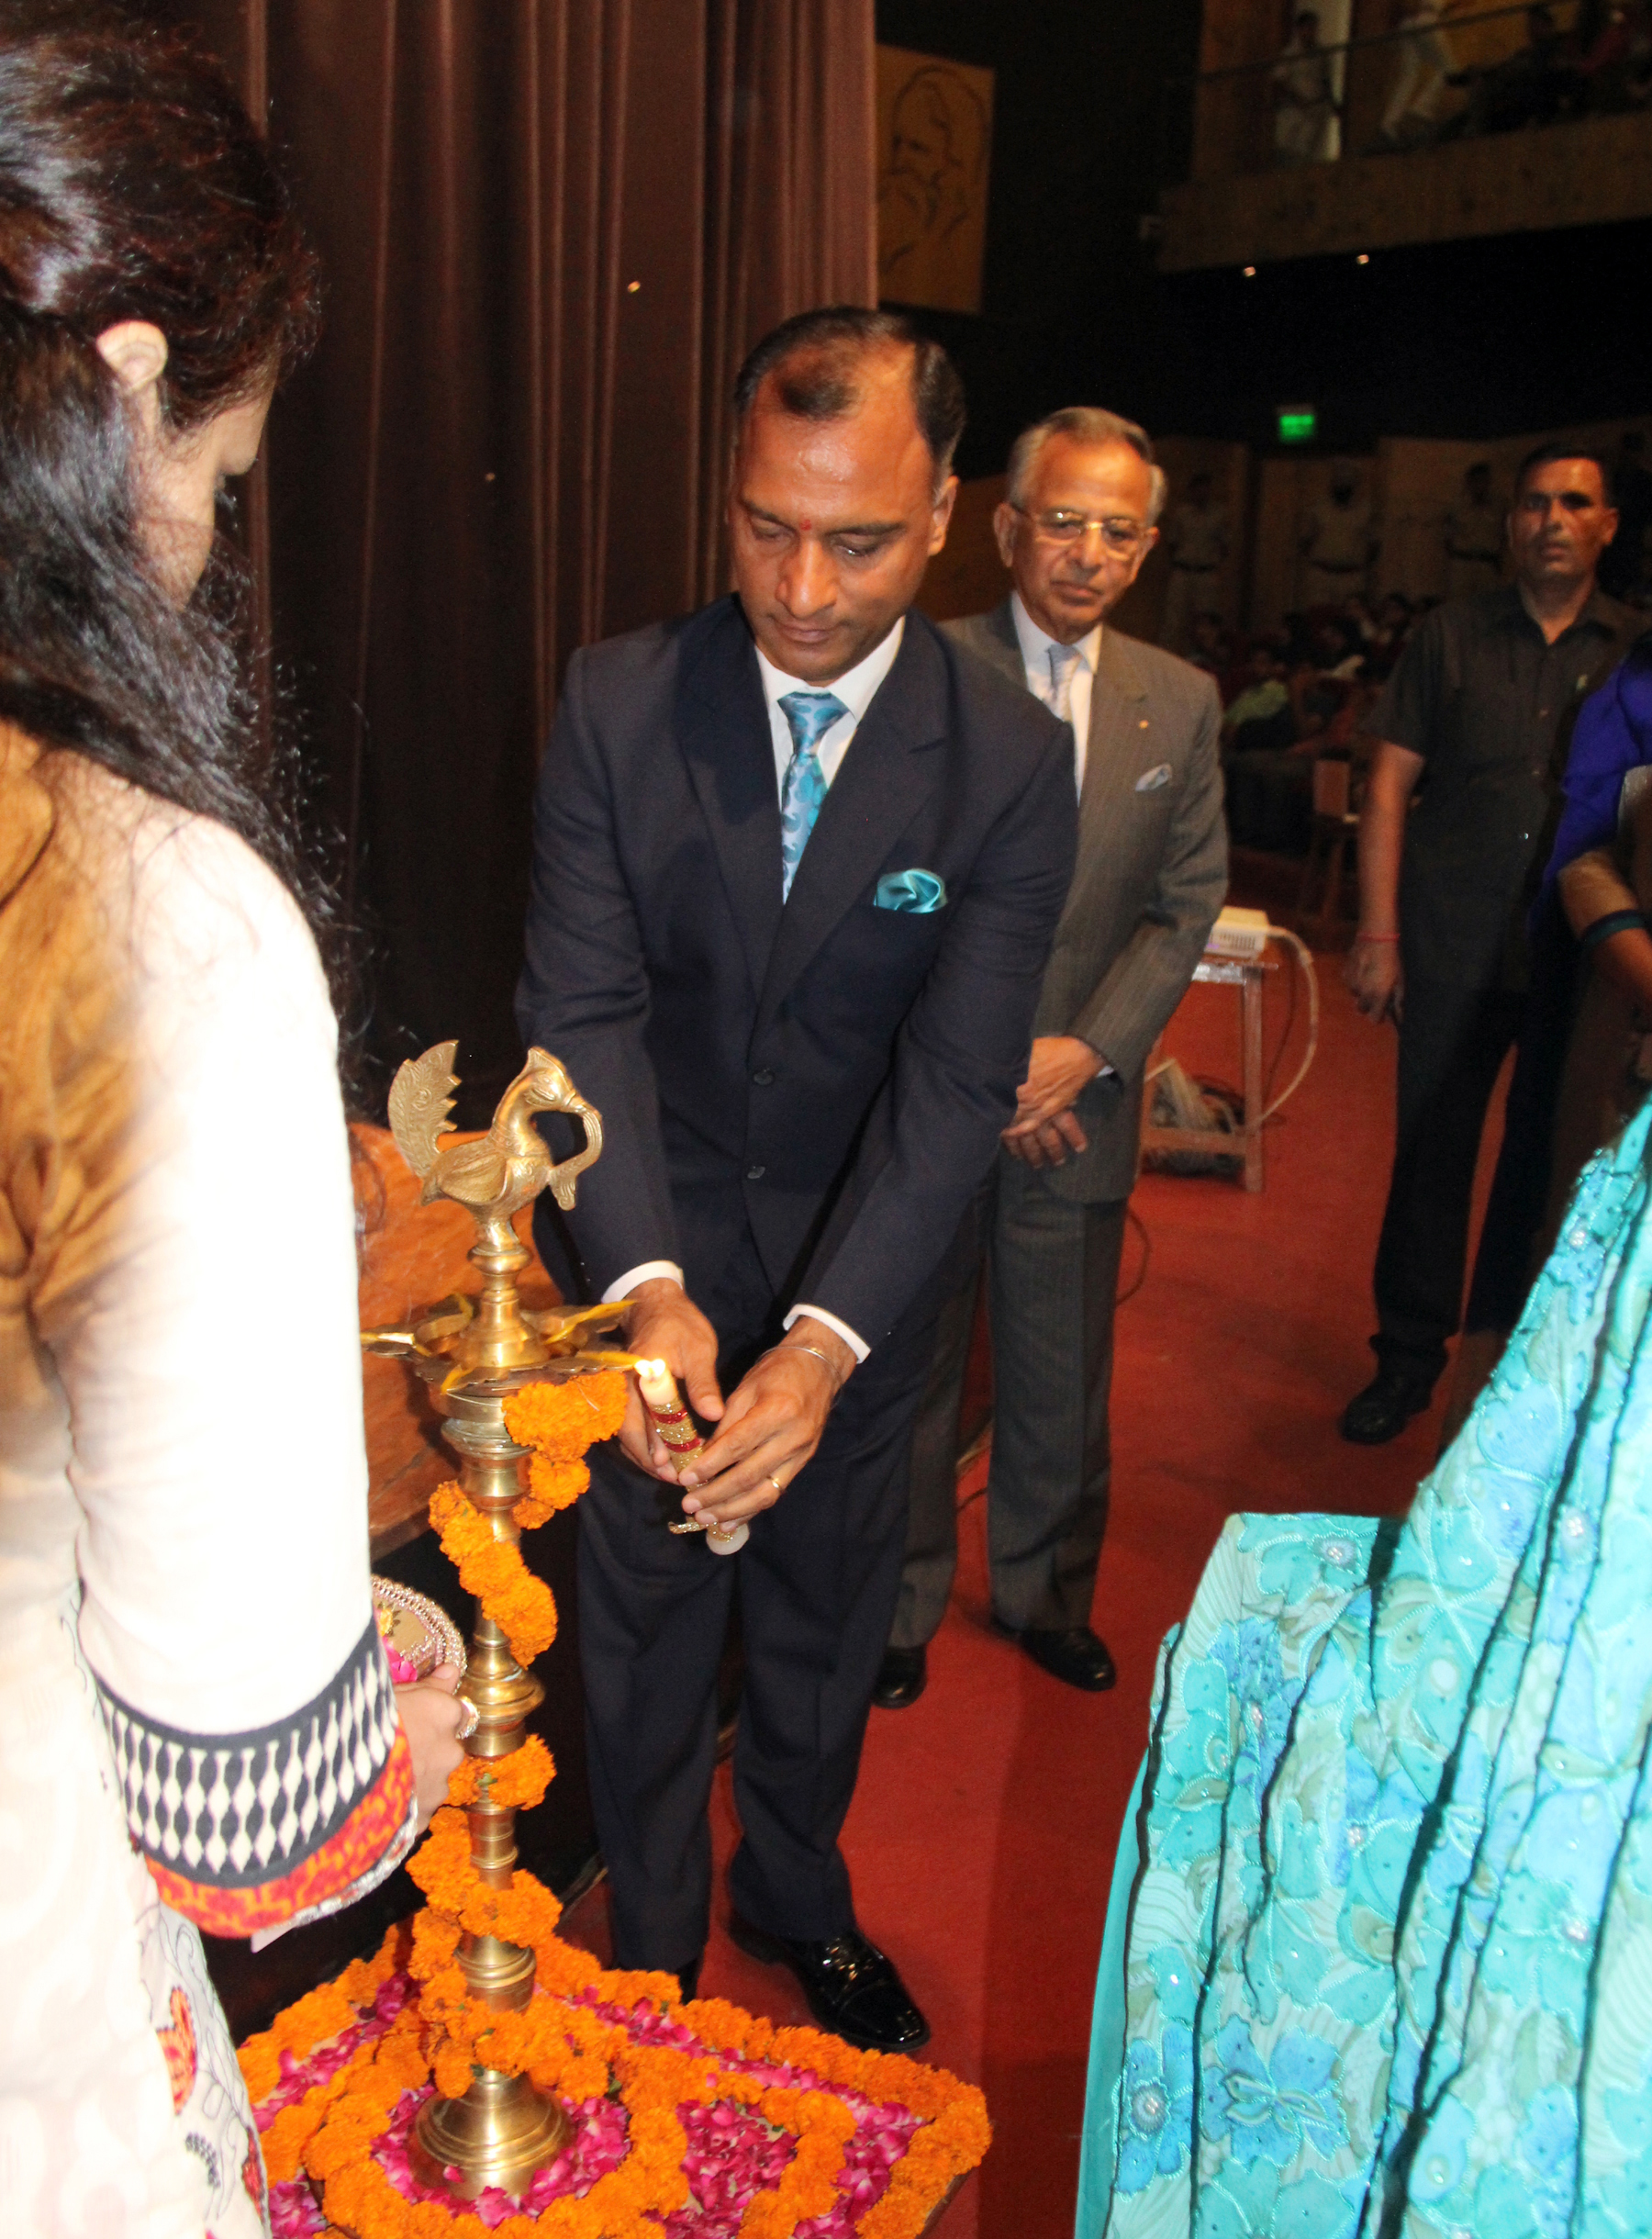 The Adviser to the Administrator, UT, Chandigarh, Mr. Vijay Dev lighting the traditional lamp at the inauguration of Bhavan Vidyalaya, Chandigarh �Model United Nations Conference-2015� at Tagore Theatre, Sector-18, Chandigarh on Friday, July 31, 2015.